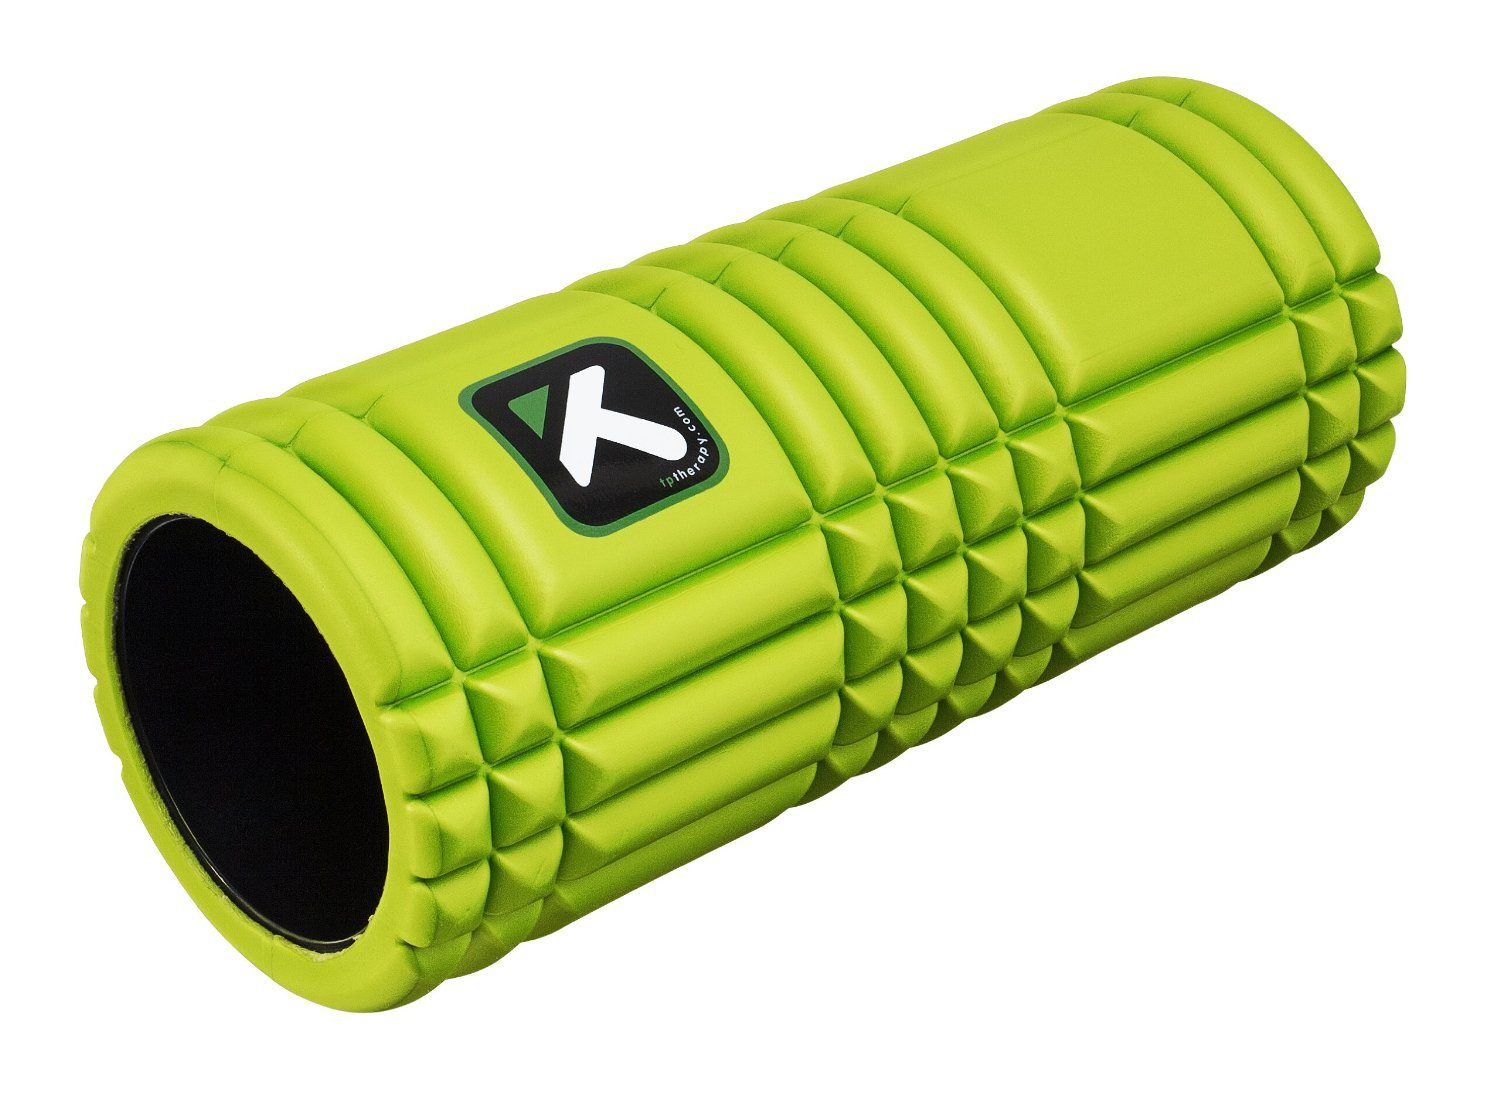 'The Grid' foam rollers are great for travelling athletes